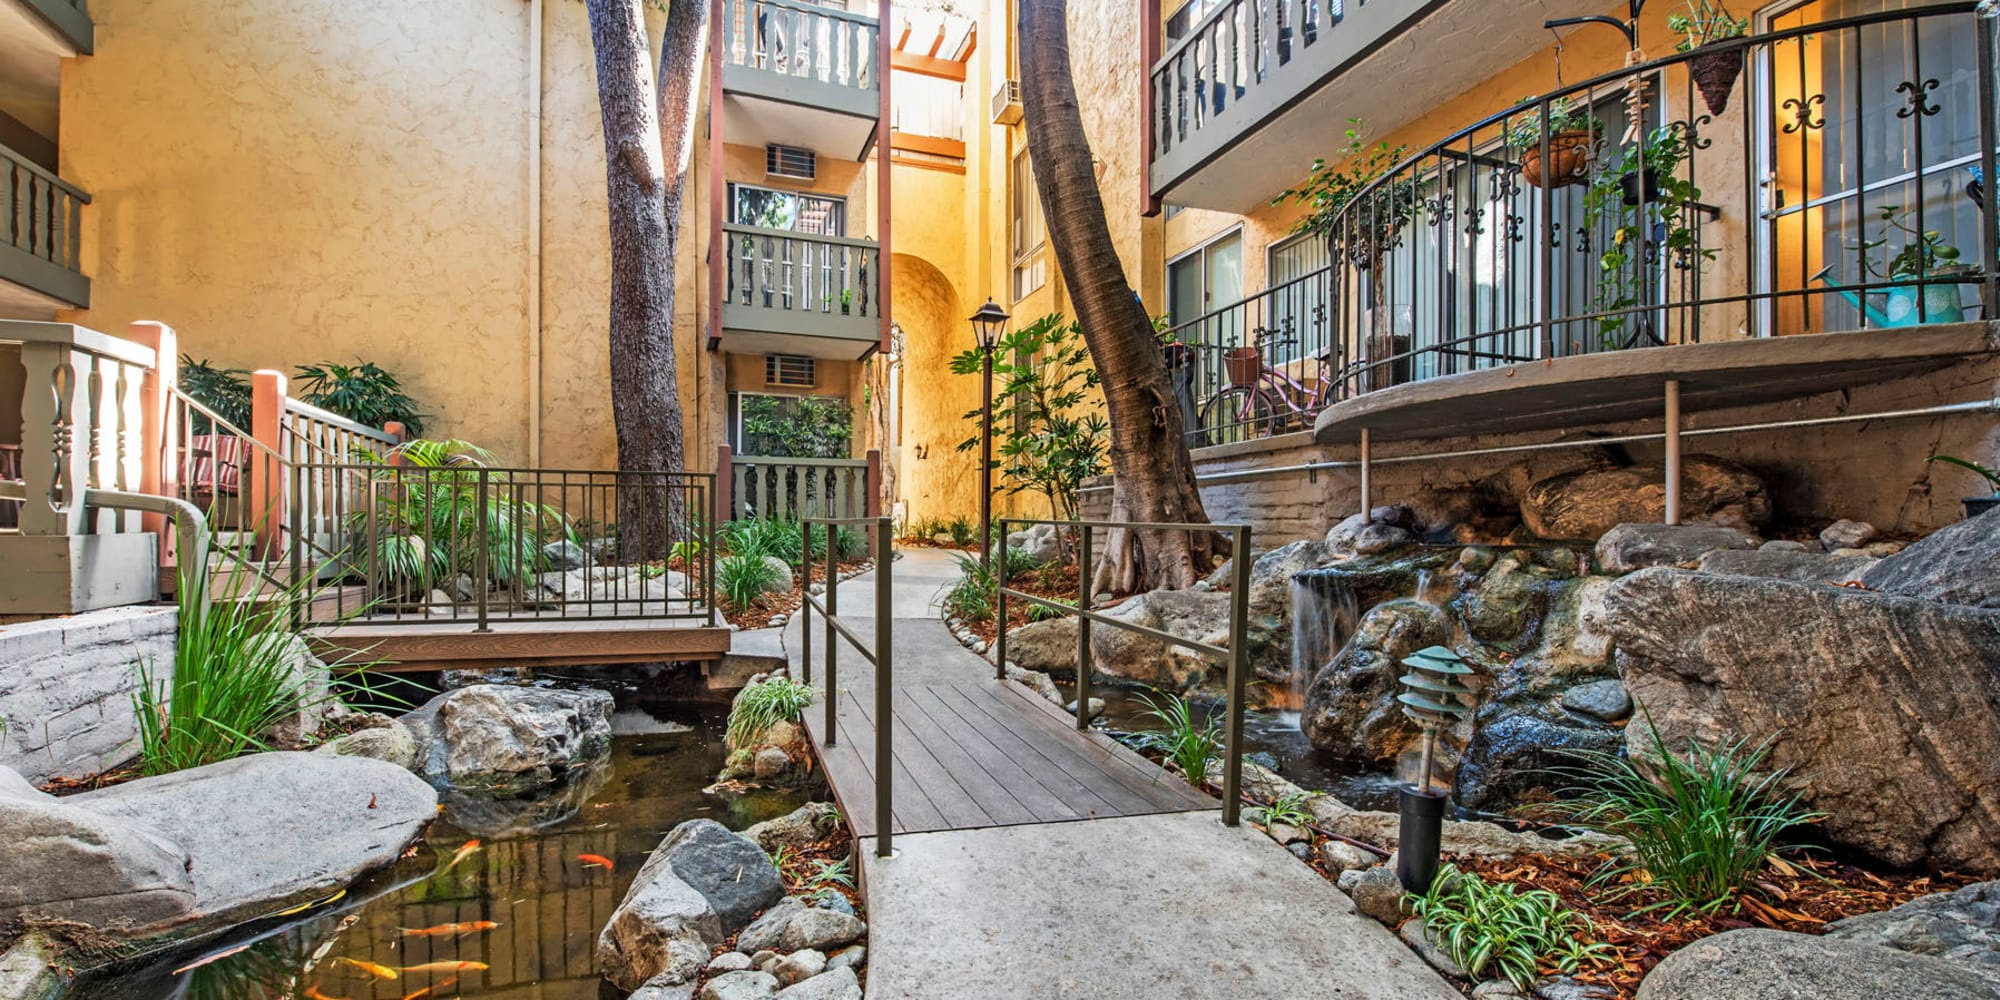 Private balconies overlooking a koi pond at Mediterranean Village in West Hollywood, California